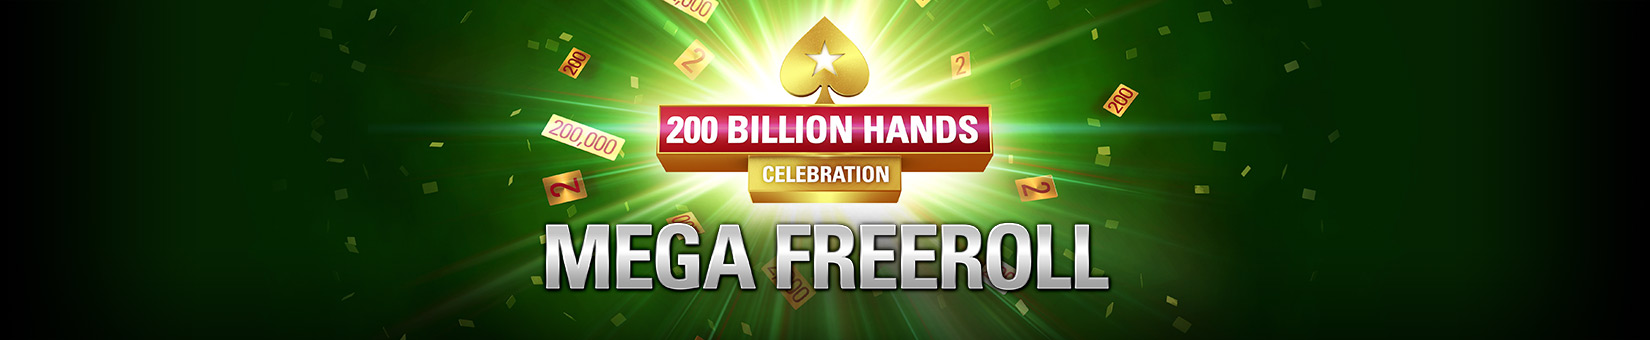 200 Billion Hands Celebration: $200K Mega Freeroll